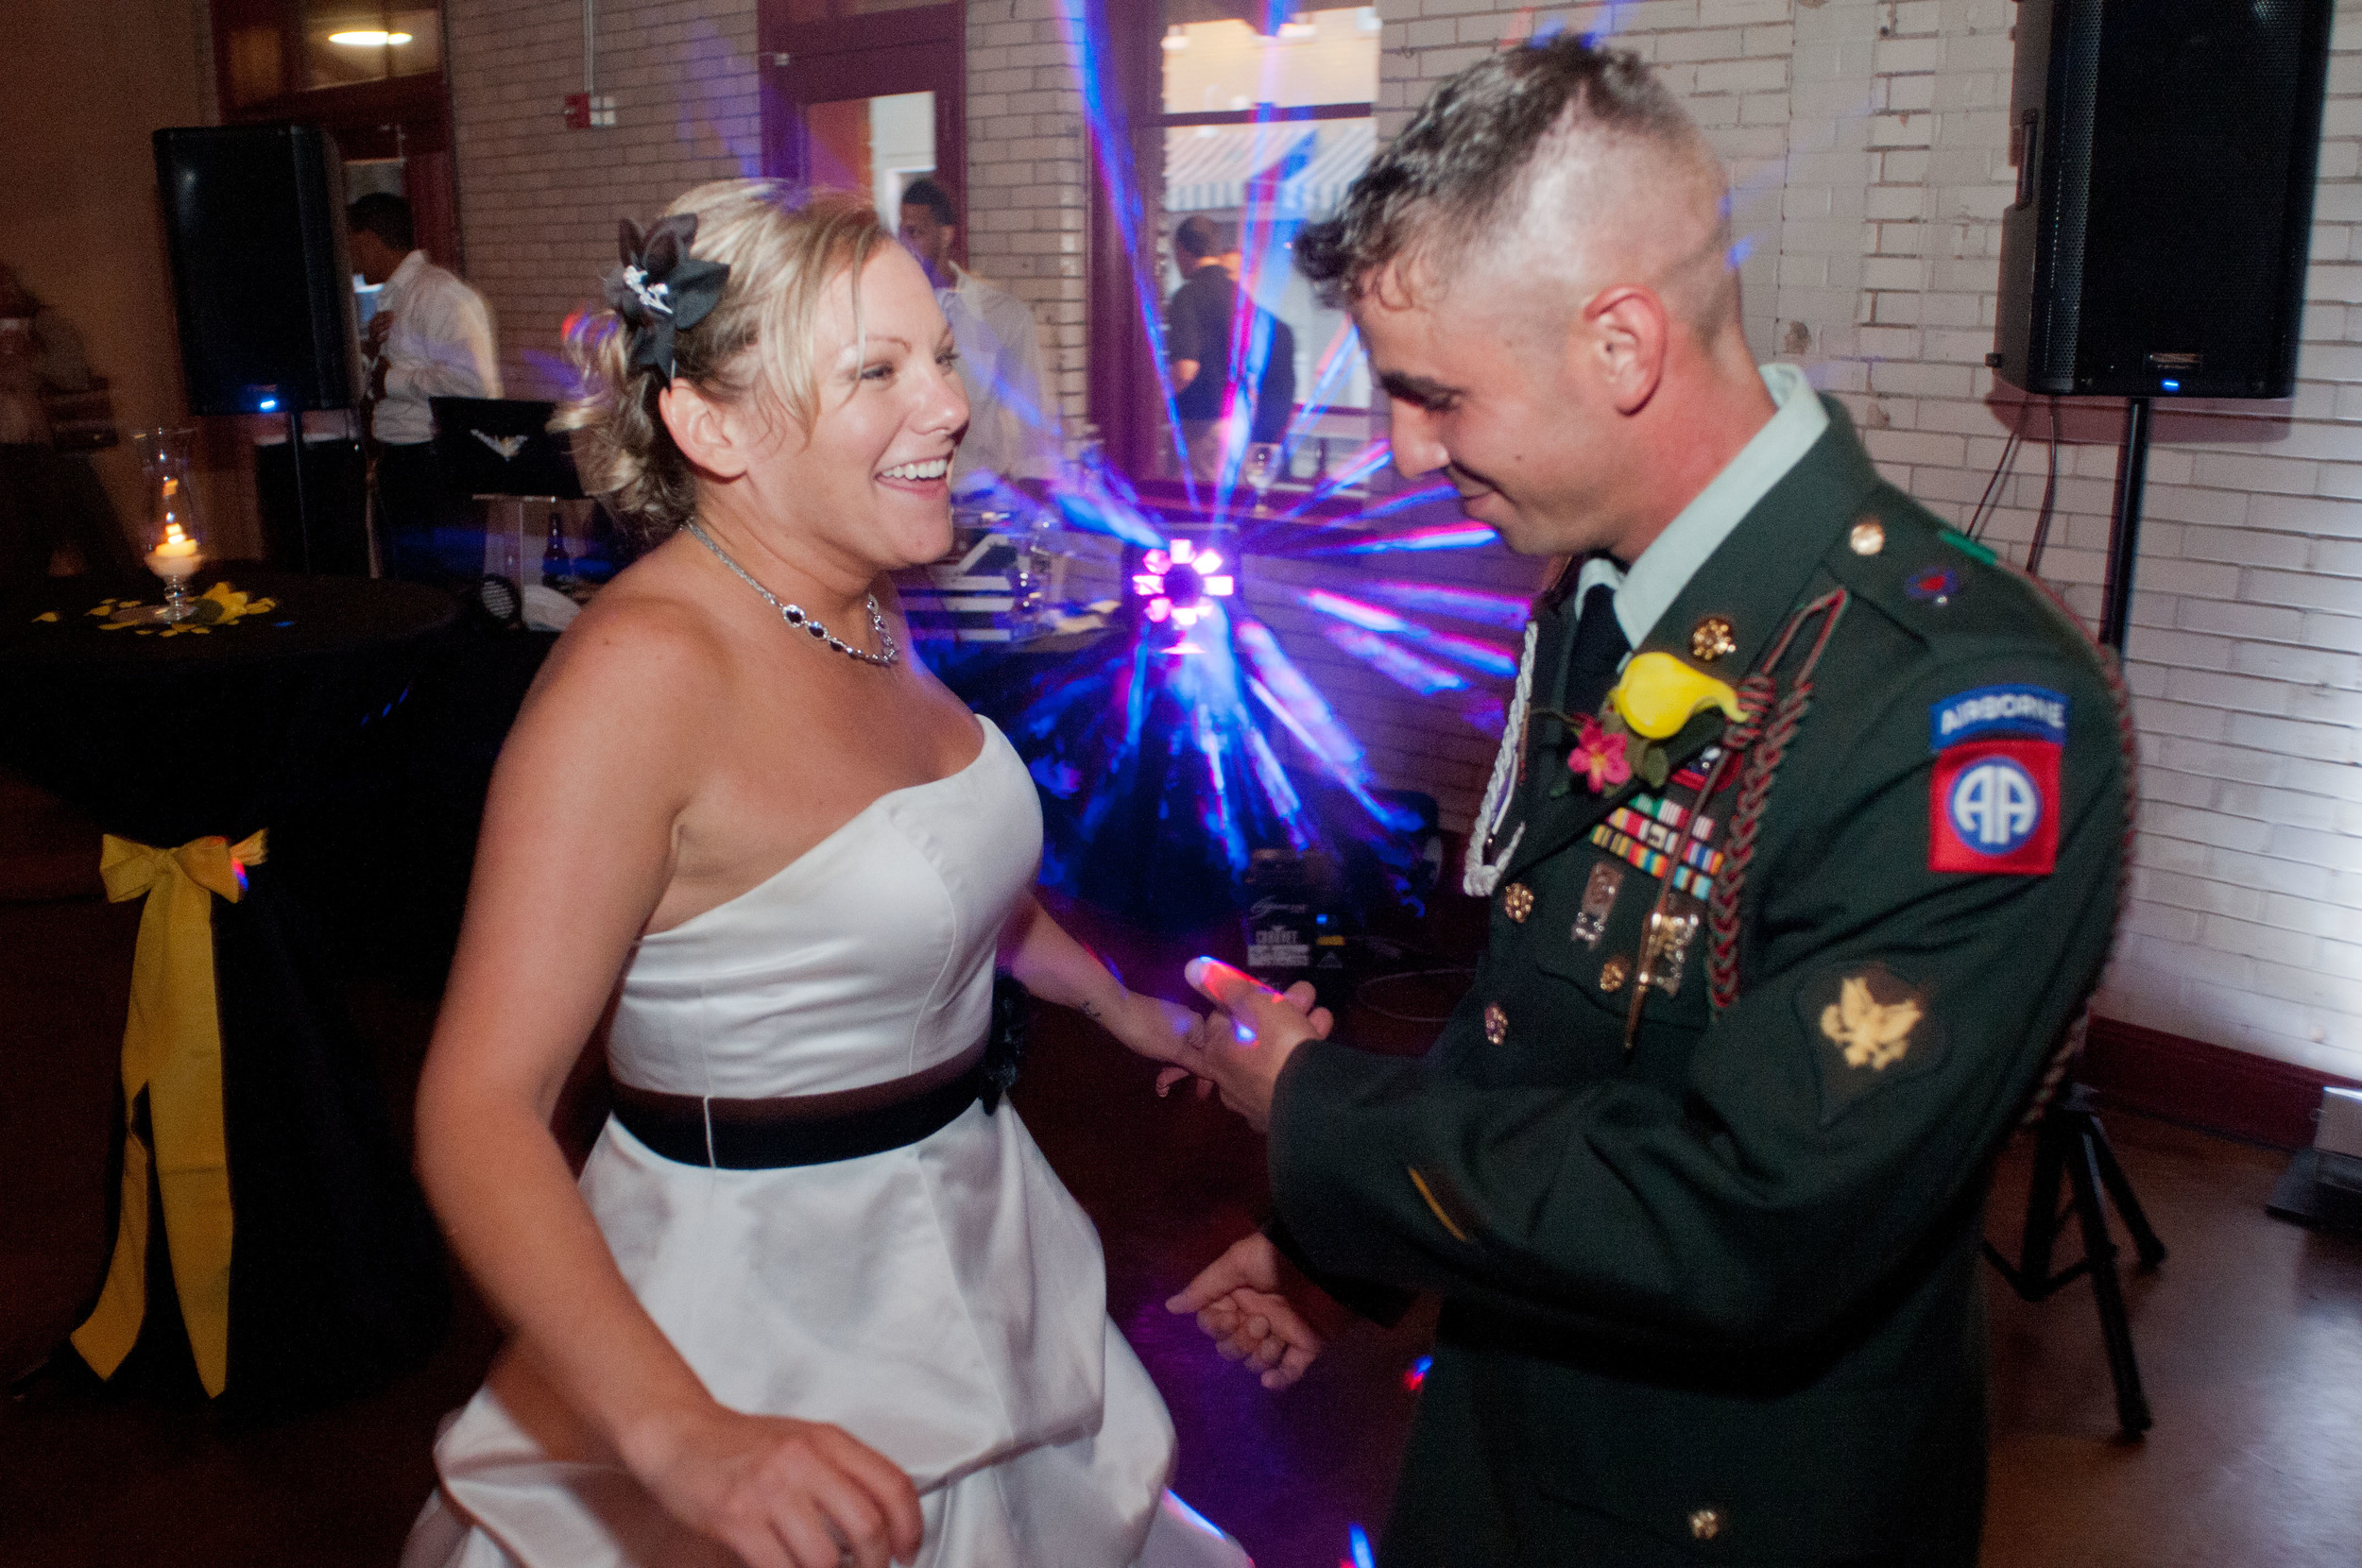 """""""Even my husband who does NOT dance was out on the dance floor having the time of his life!""""     In July of 2013, my husband and I had the celebration for the start of our lives together. Hiring a DJ for our wedding was a very important decision.Too many times, I have gone to weddings where the DJ was not very good, it really impacted the whole experience.   We decided to go with Star Struck Unlimited, specifically Lorenzo, because he has a grasp on how to read a crowd and play what the vibe is.     Lorenzo personally came to our house a few weeks before the wedding to discuss what we wanted for ceremony songs, reception songs, introductions, dance music, etc. He was able to obtain every song we wanted for not only our ceremony but also for the reception. It was perfect! Once the formalities of the reception were over, the dance party began. Lorenzo did exactly what he's known for – feeling the vibe of the crowd and playing what keeps people on the dance floor.   Even my husband who does NOT dance was out on the dance floor having the time of his life!   All our guests complimented how good our DJ was and what a great vibe there was! I'm sure every bride hears what a fantastic wedding they had, but with ours, I really feel that the music brought the fun on the dance floor and truly indicated what a great time it was. Lorenzo was such a big part of making our wedding the party we wanted it to be and he is still a close friend.    -Beth G."""